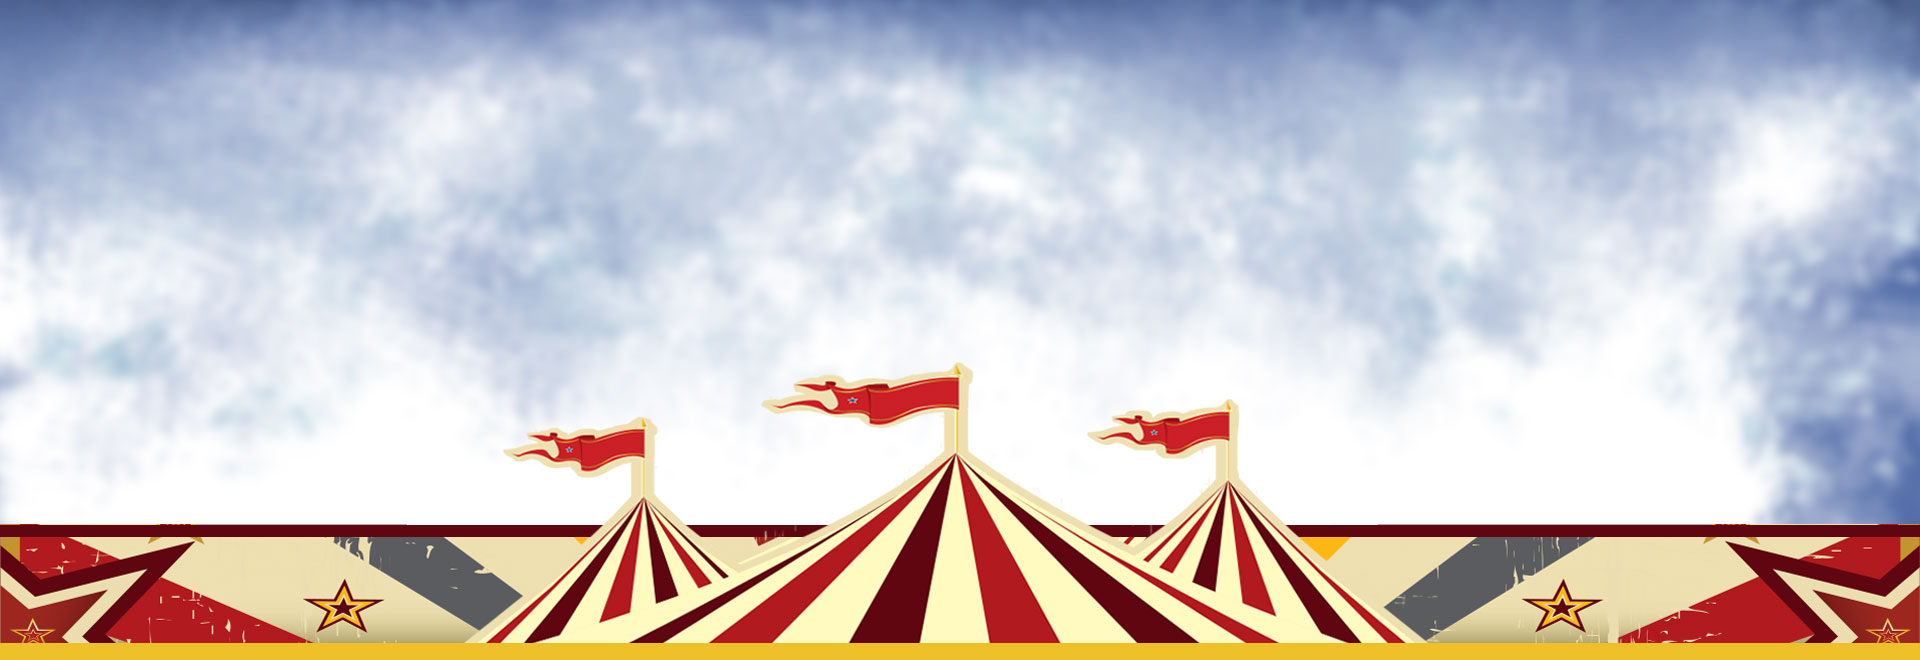 home big top circus